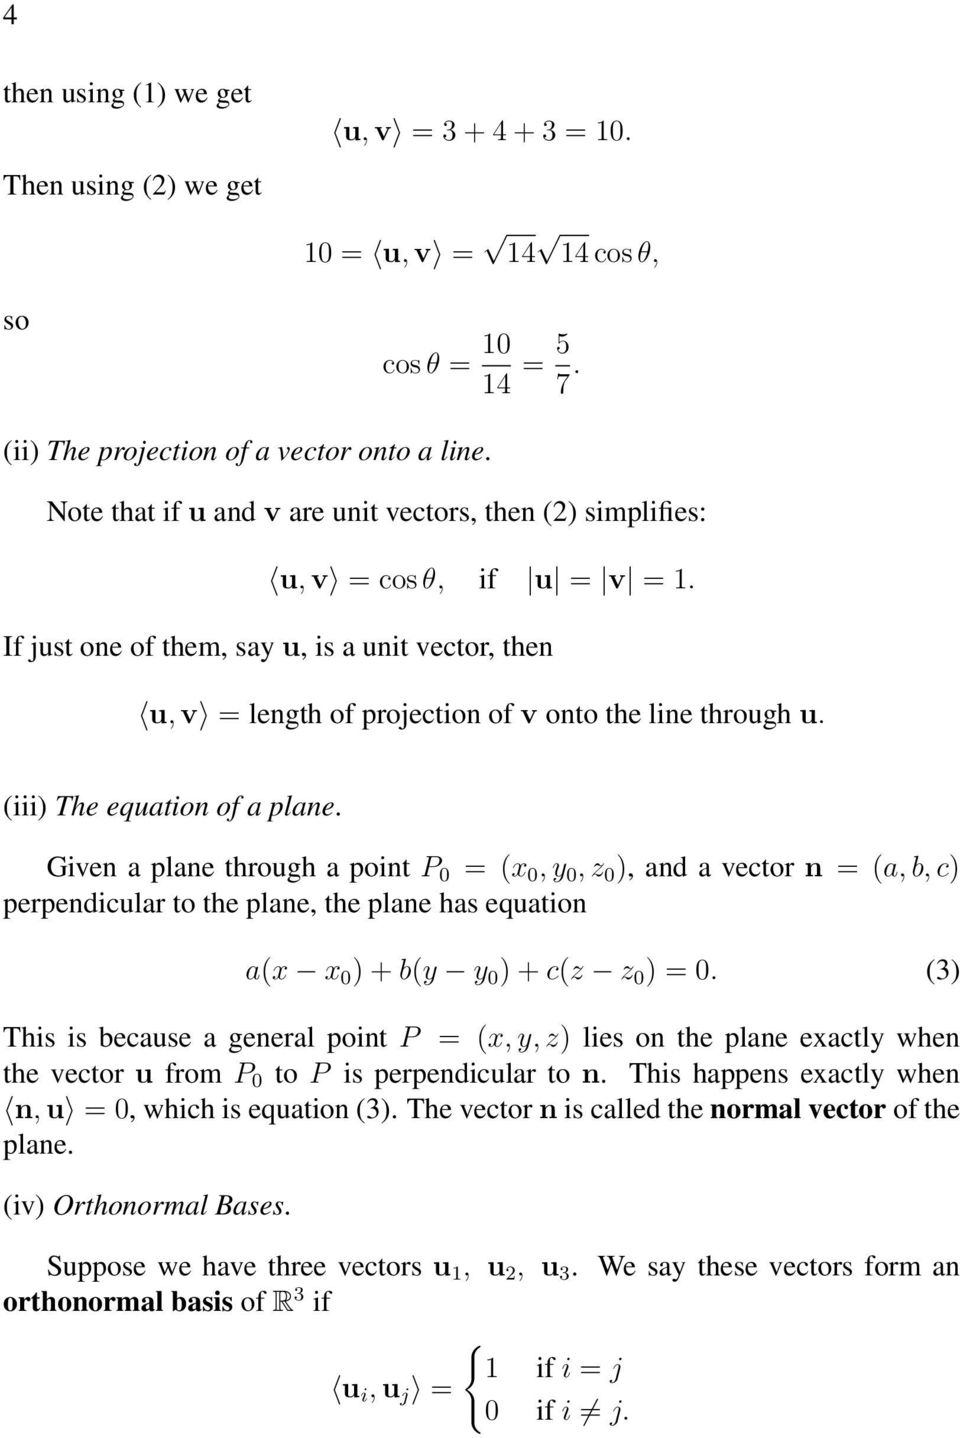 (iii) The equation of a plane.